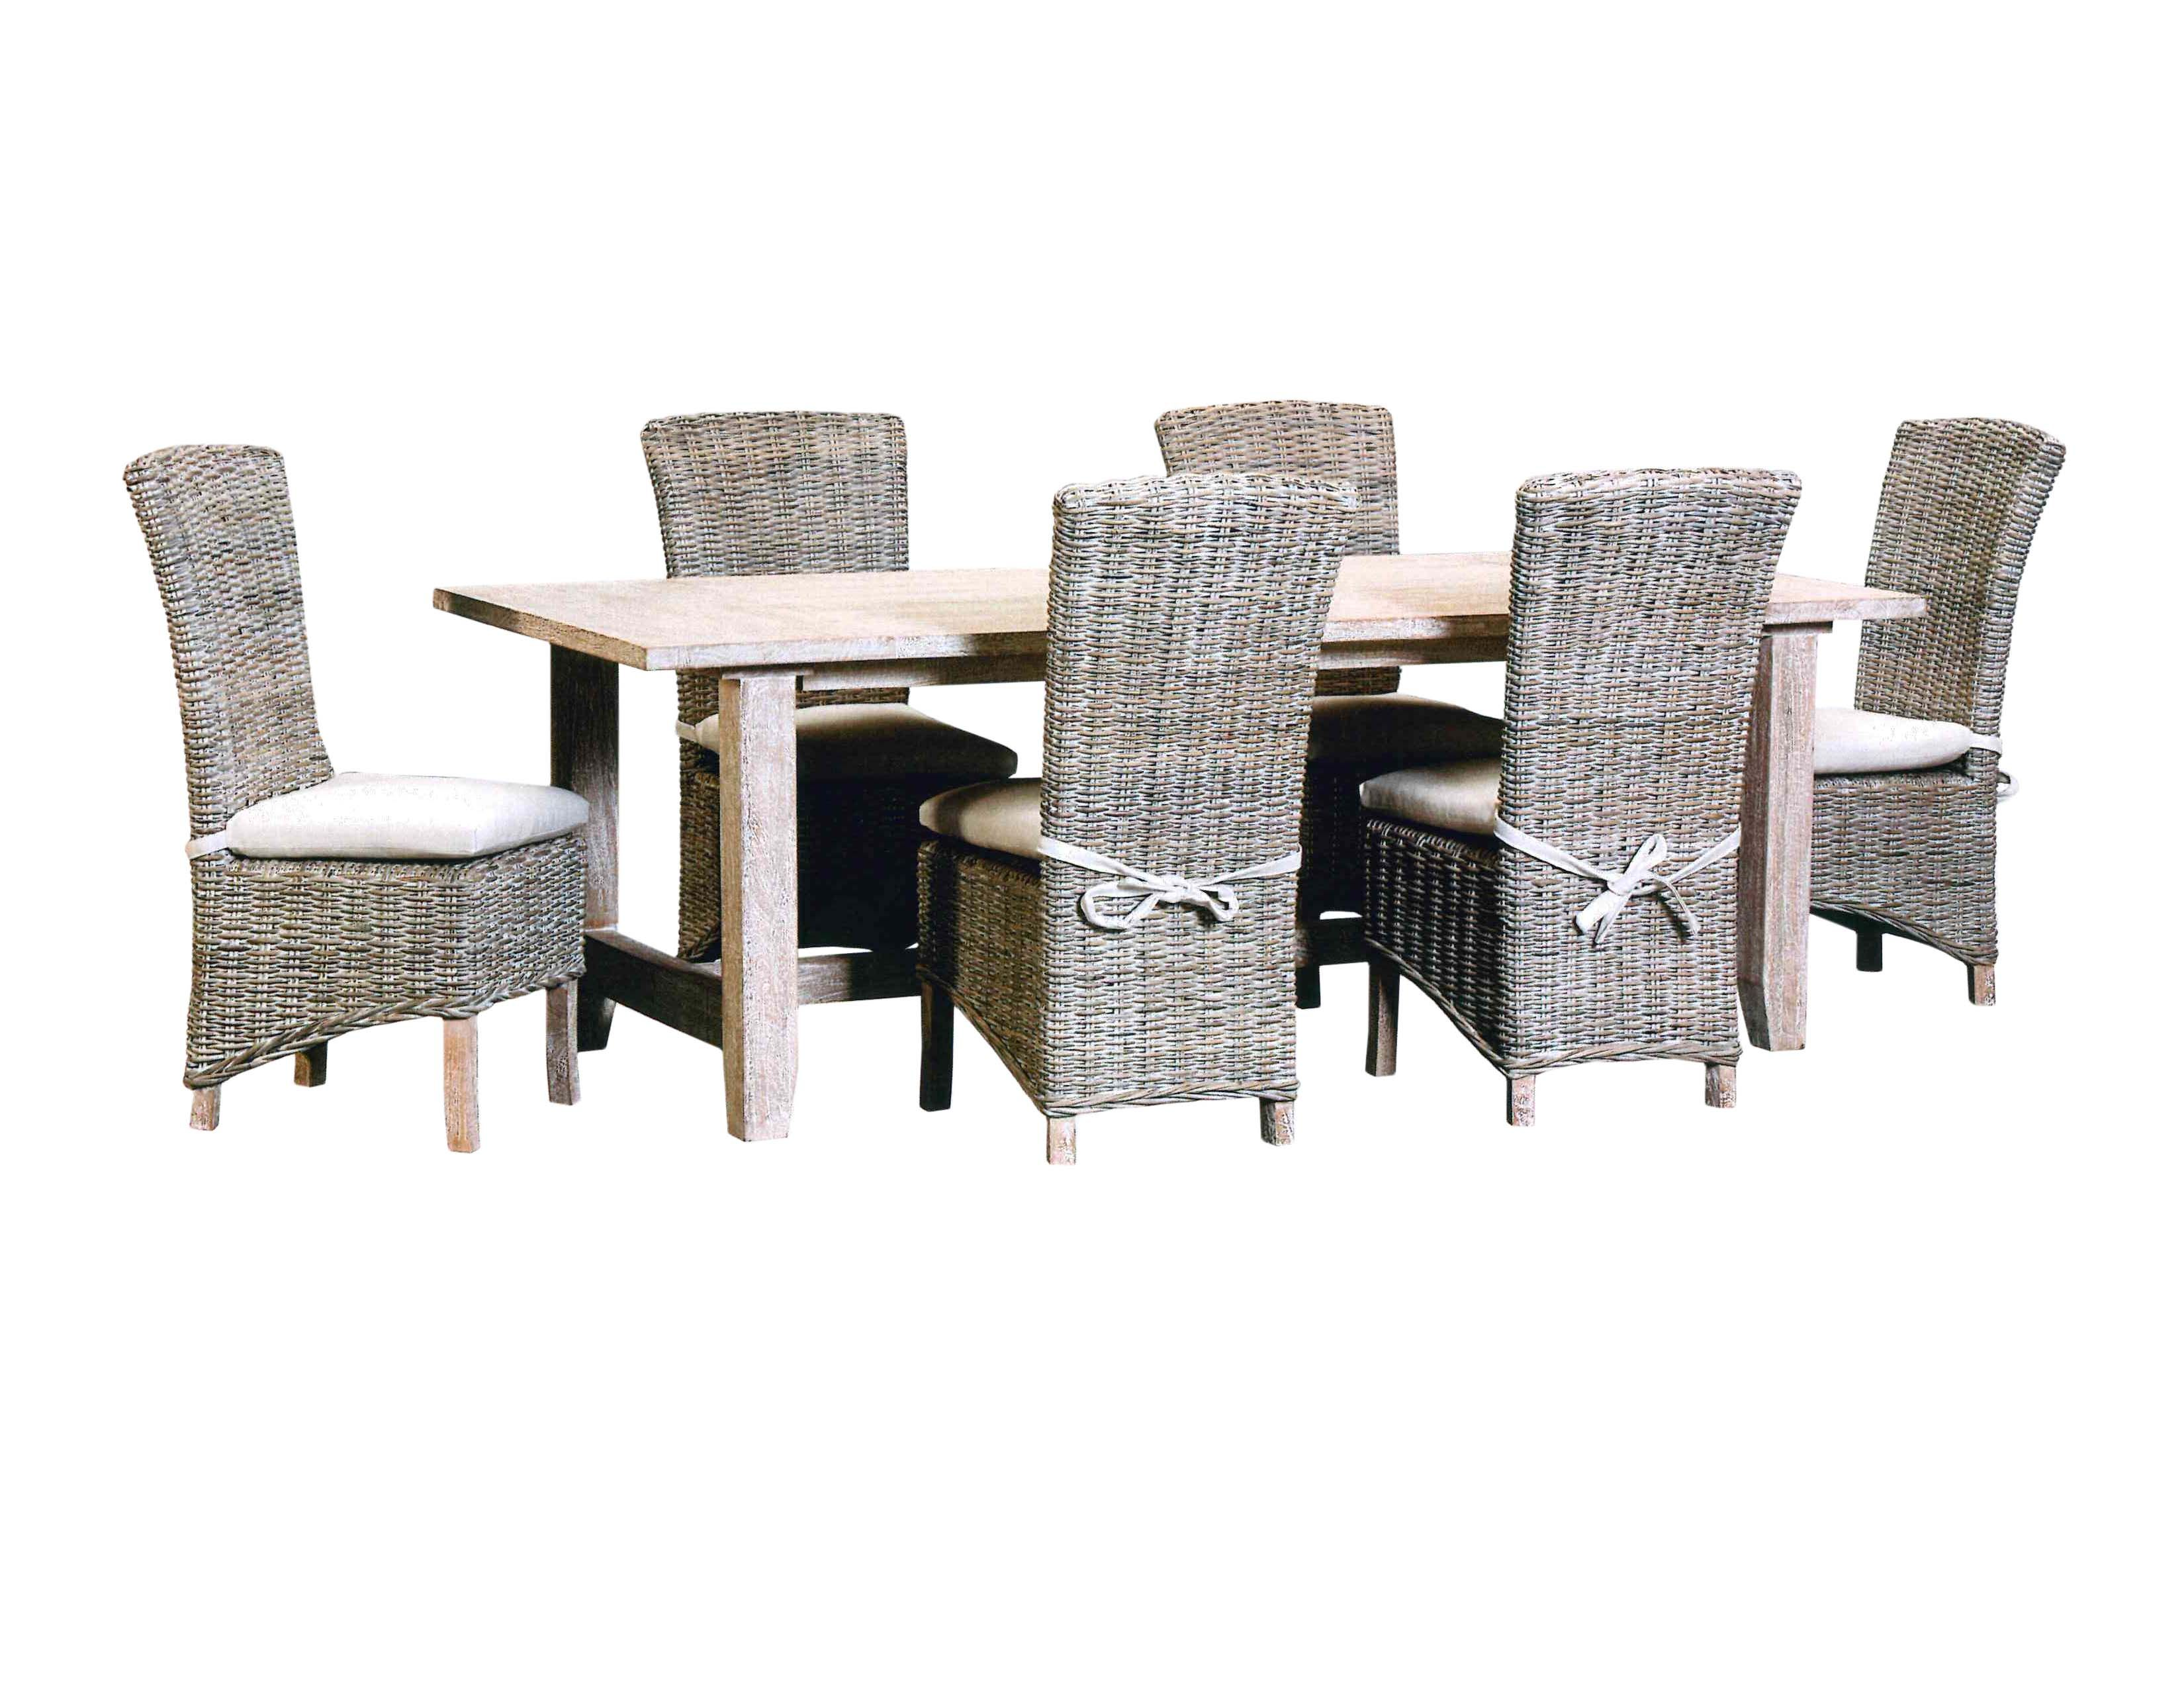 Vero Beachs Sunshine Furniture Is Your Home For Casual Patio Or Pool